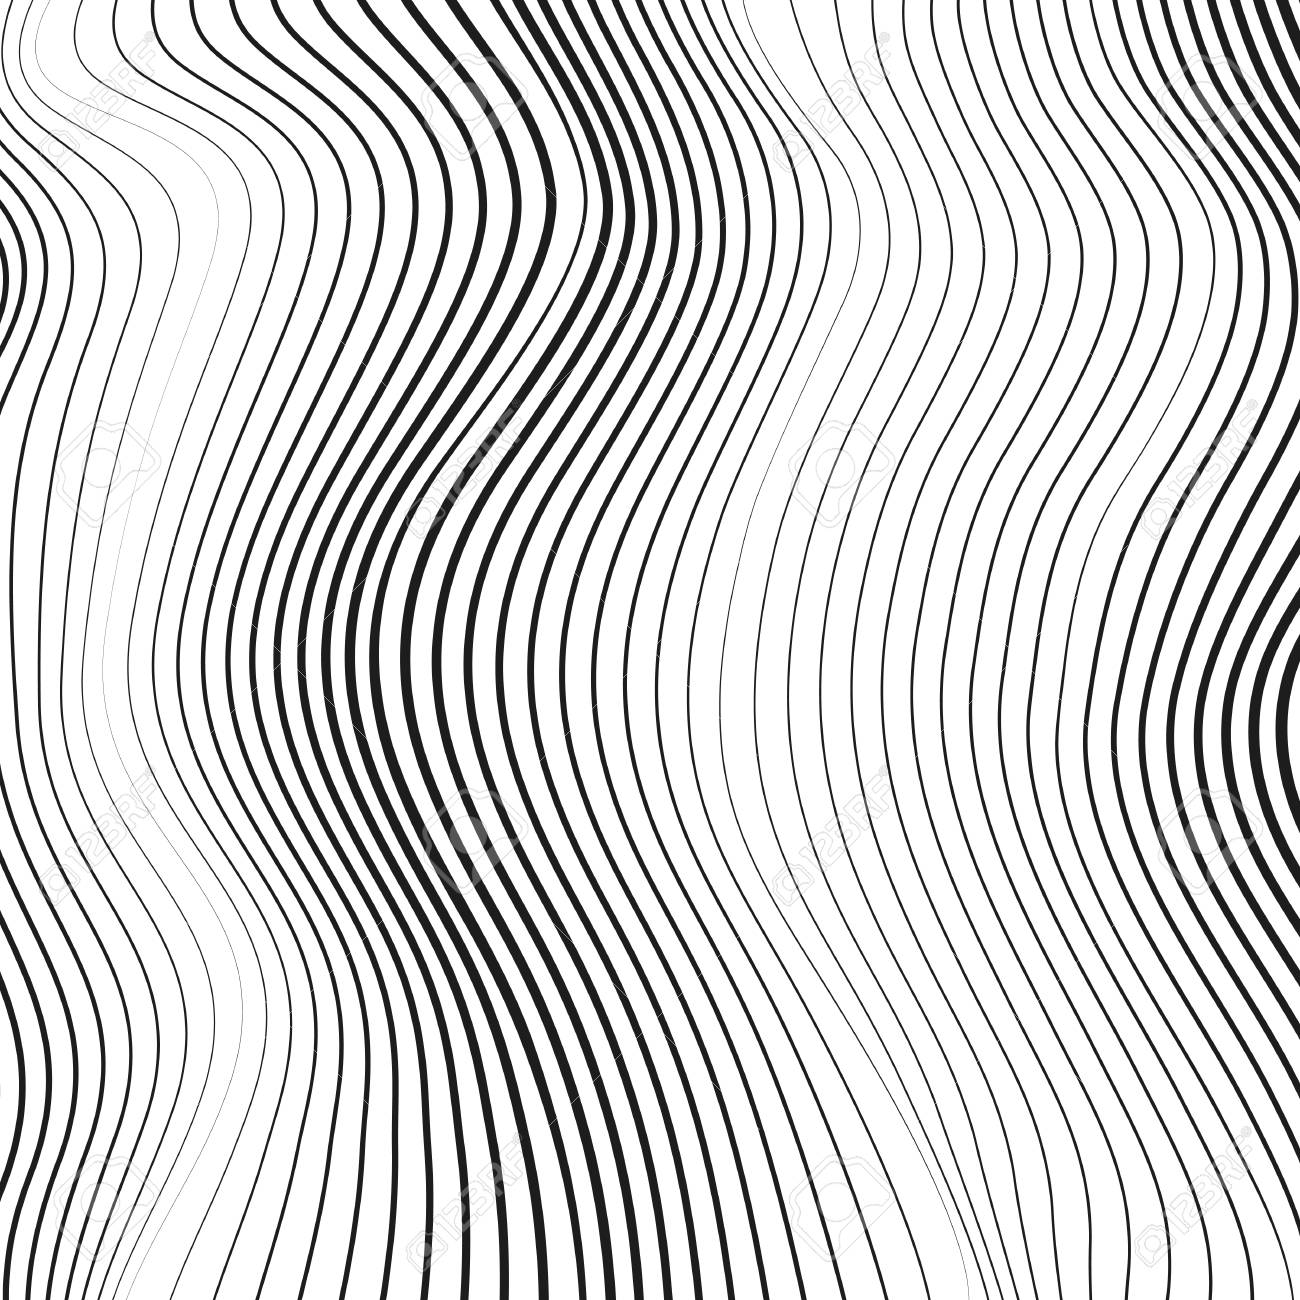 Simple Abstract Art Black And White Lines